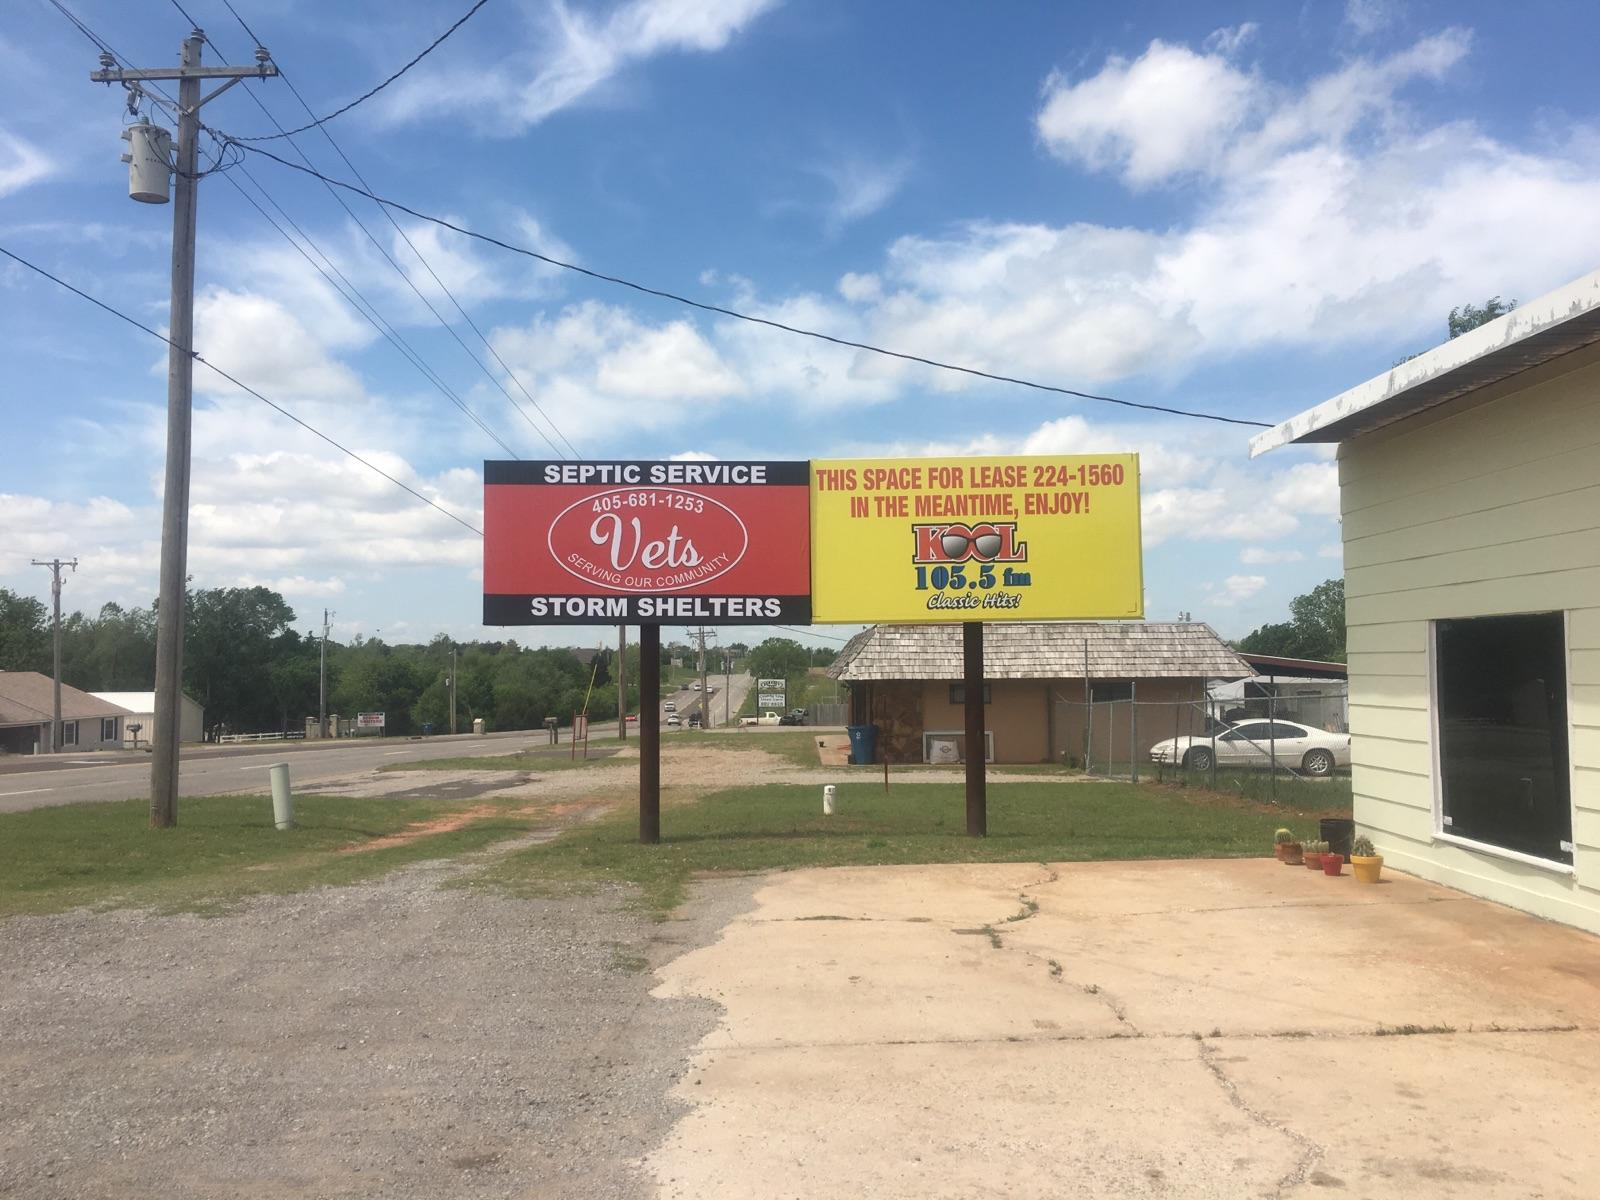 Side-by-side billboard